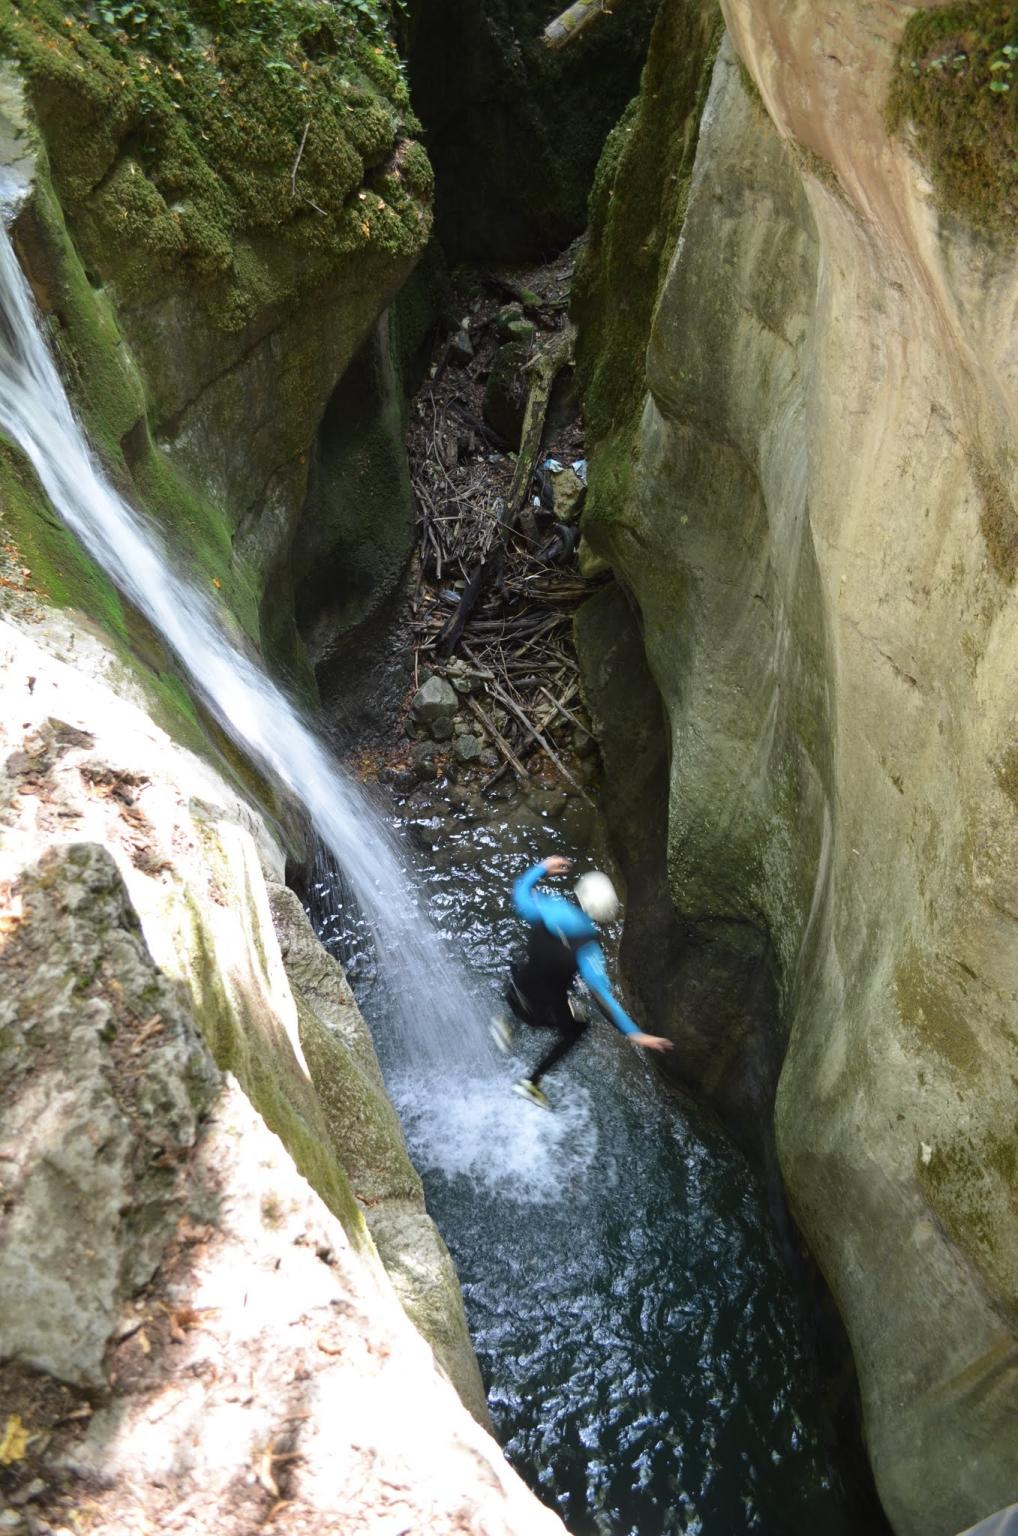 A five meters jump from a step in the middle of the waterfall!